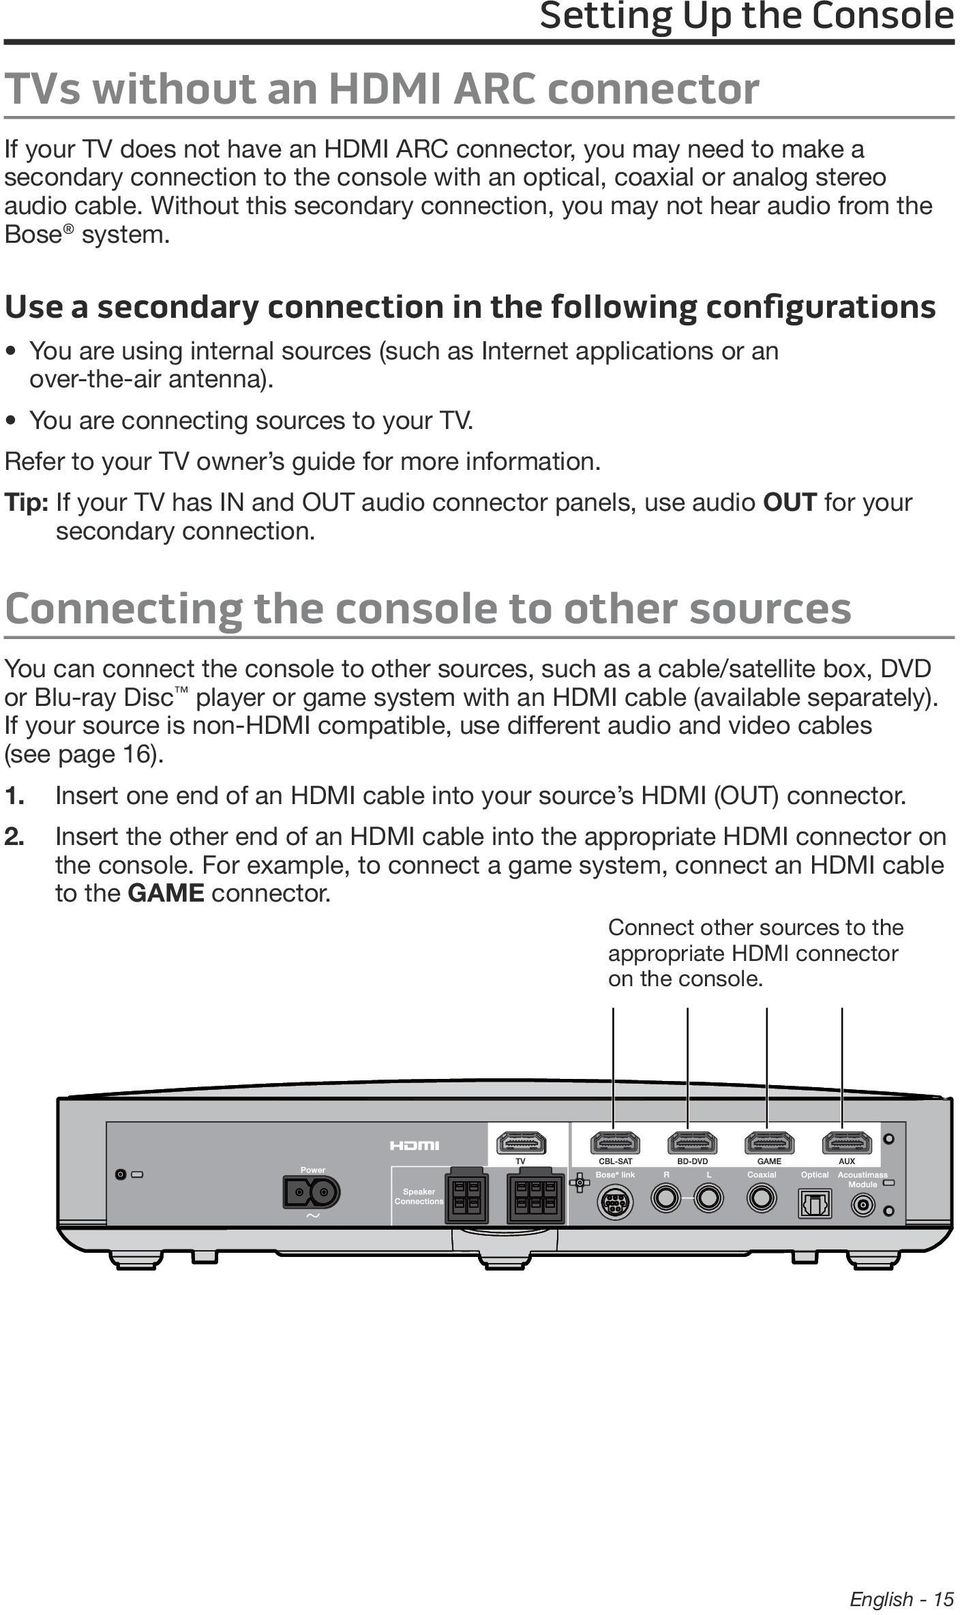 Use a secondary connection in the following configurations You are using internal sources (such as Internet applications or an over-the-air antenna). You are connecting sources to your TV.